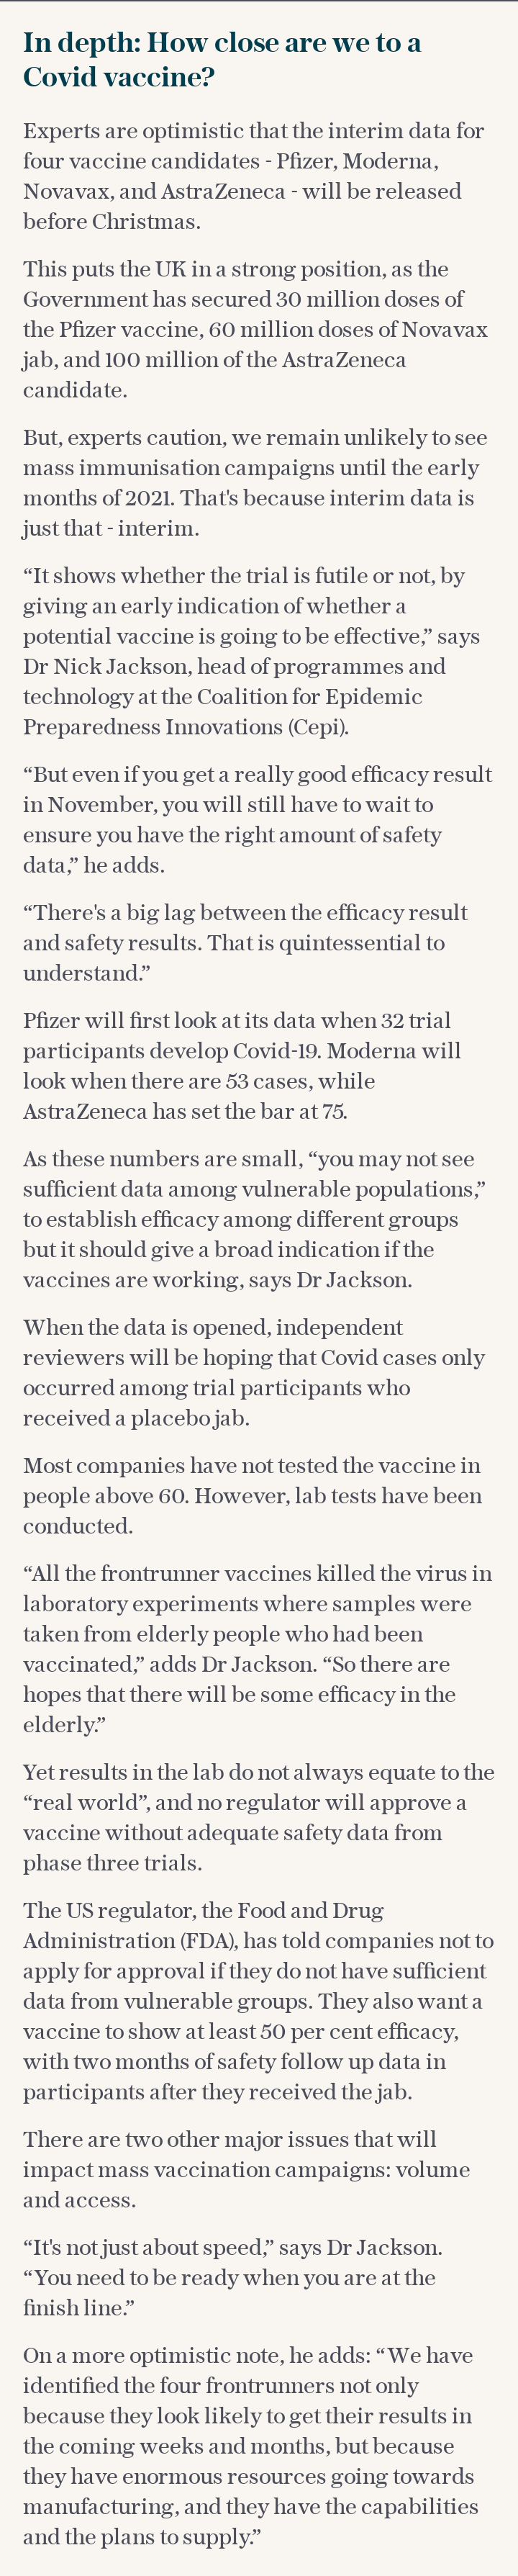 How close are we to a Covid vaccine?